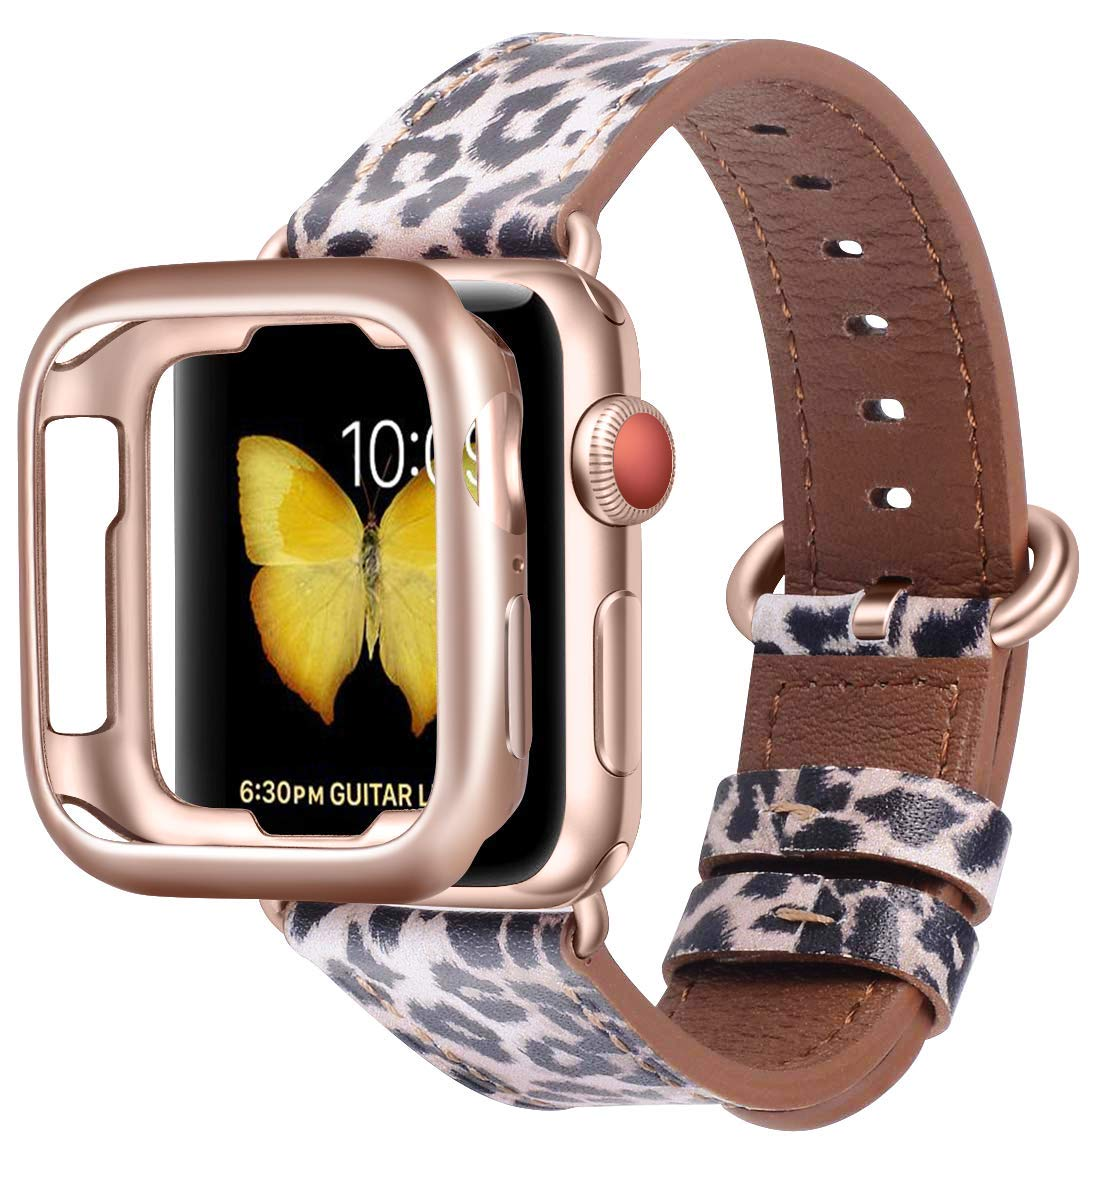 JSGJMY Compatible with Apple Watch Band 38mm 40mm with Case,Women Genuine Leather Strap with Rose Gold Adapter and Buckle(The Same Color as Series 4/3 Gold Aluminum) for iwatch Series 4/3/2/1, Leopard by JSGJMY